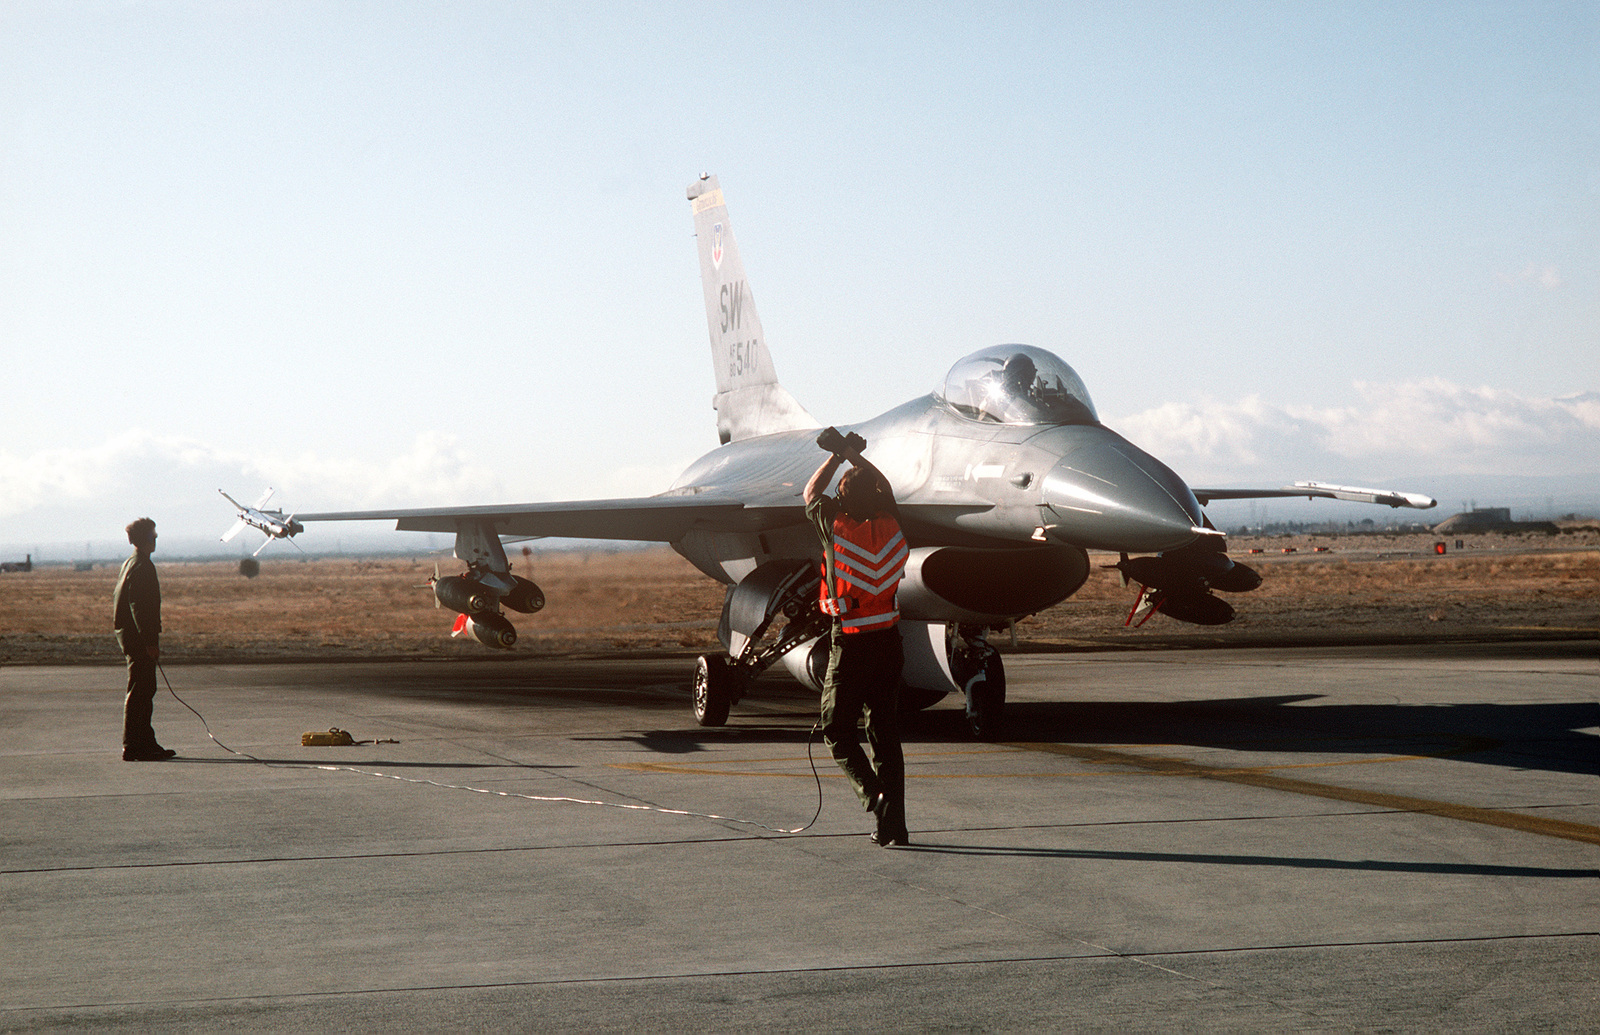 A ground crewman signals the pilot of an F-16 Fighting